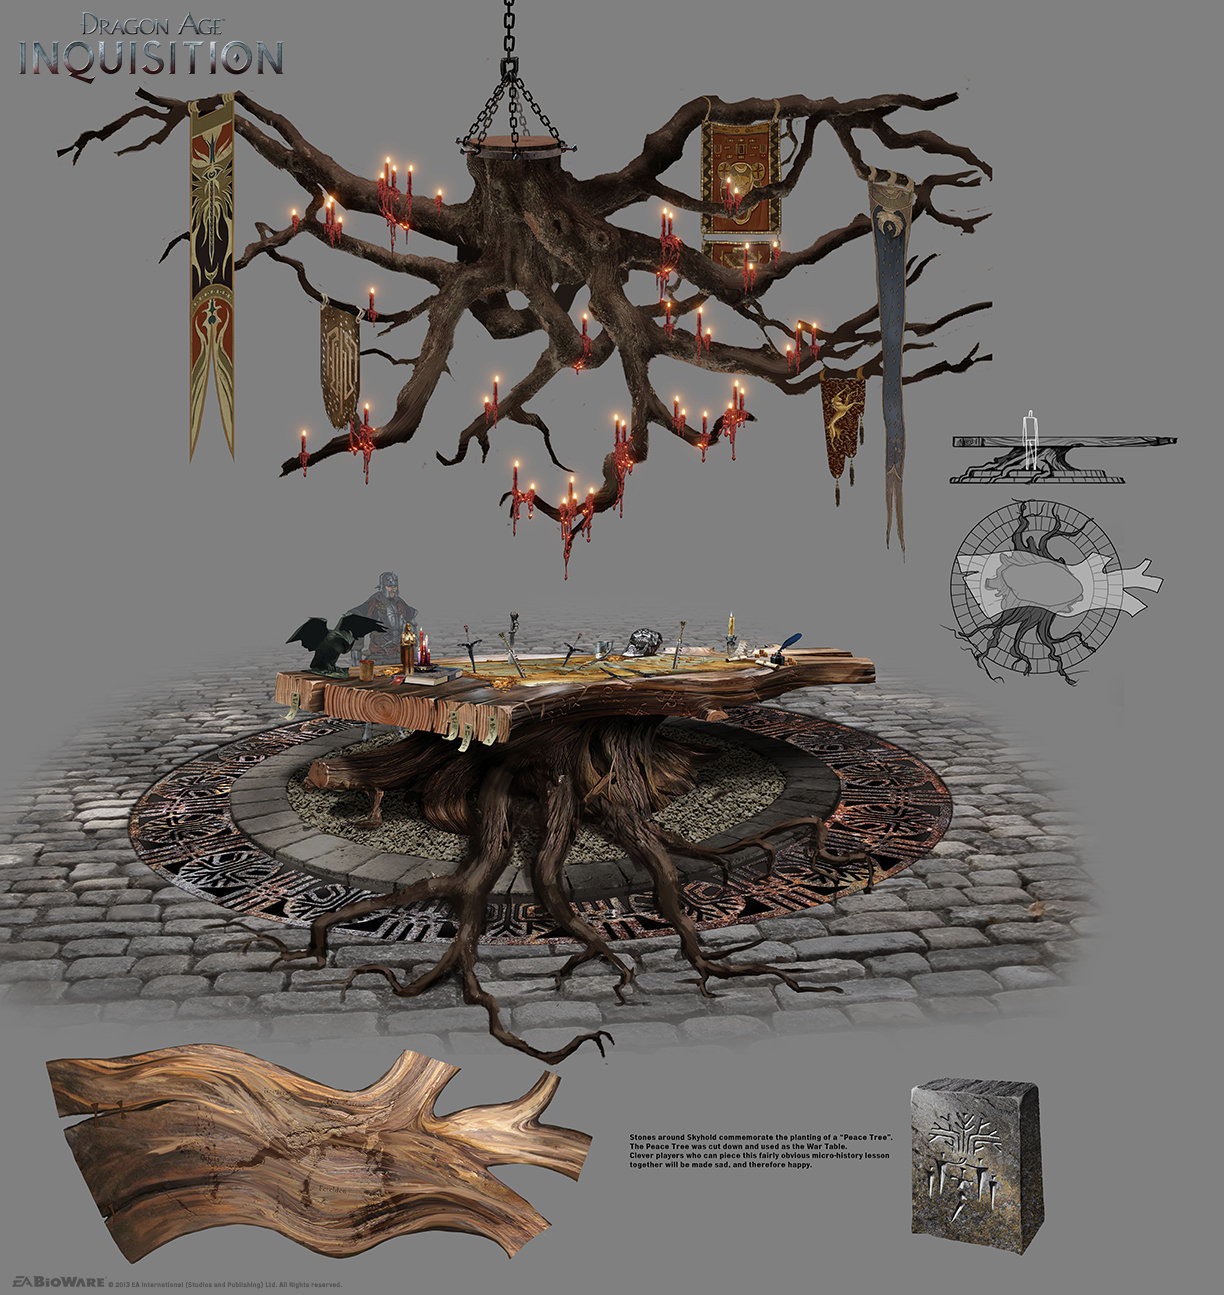 Photoshop concept art tools Dragon Age Inquisition